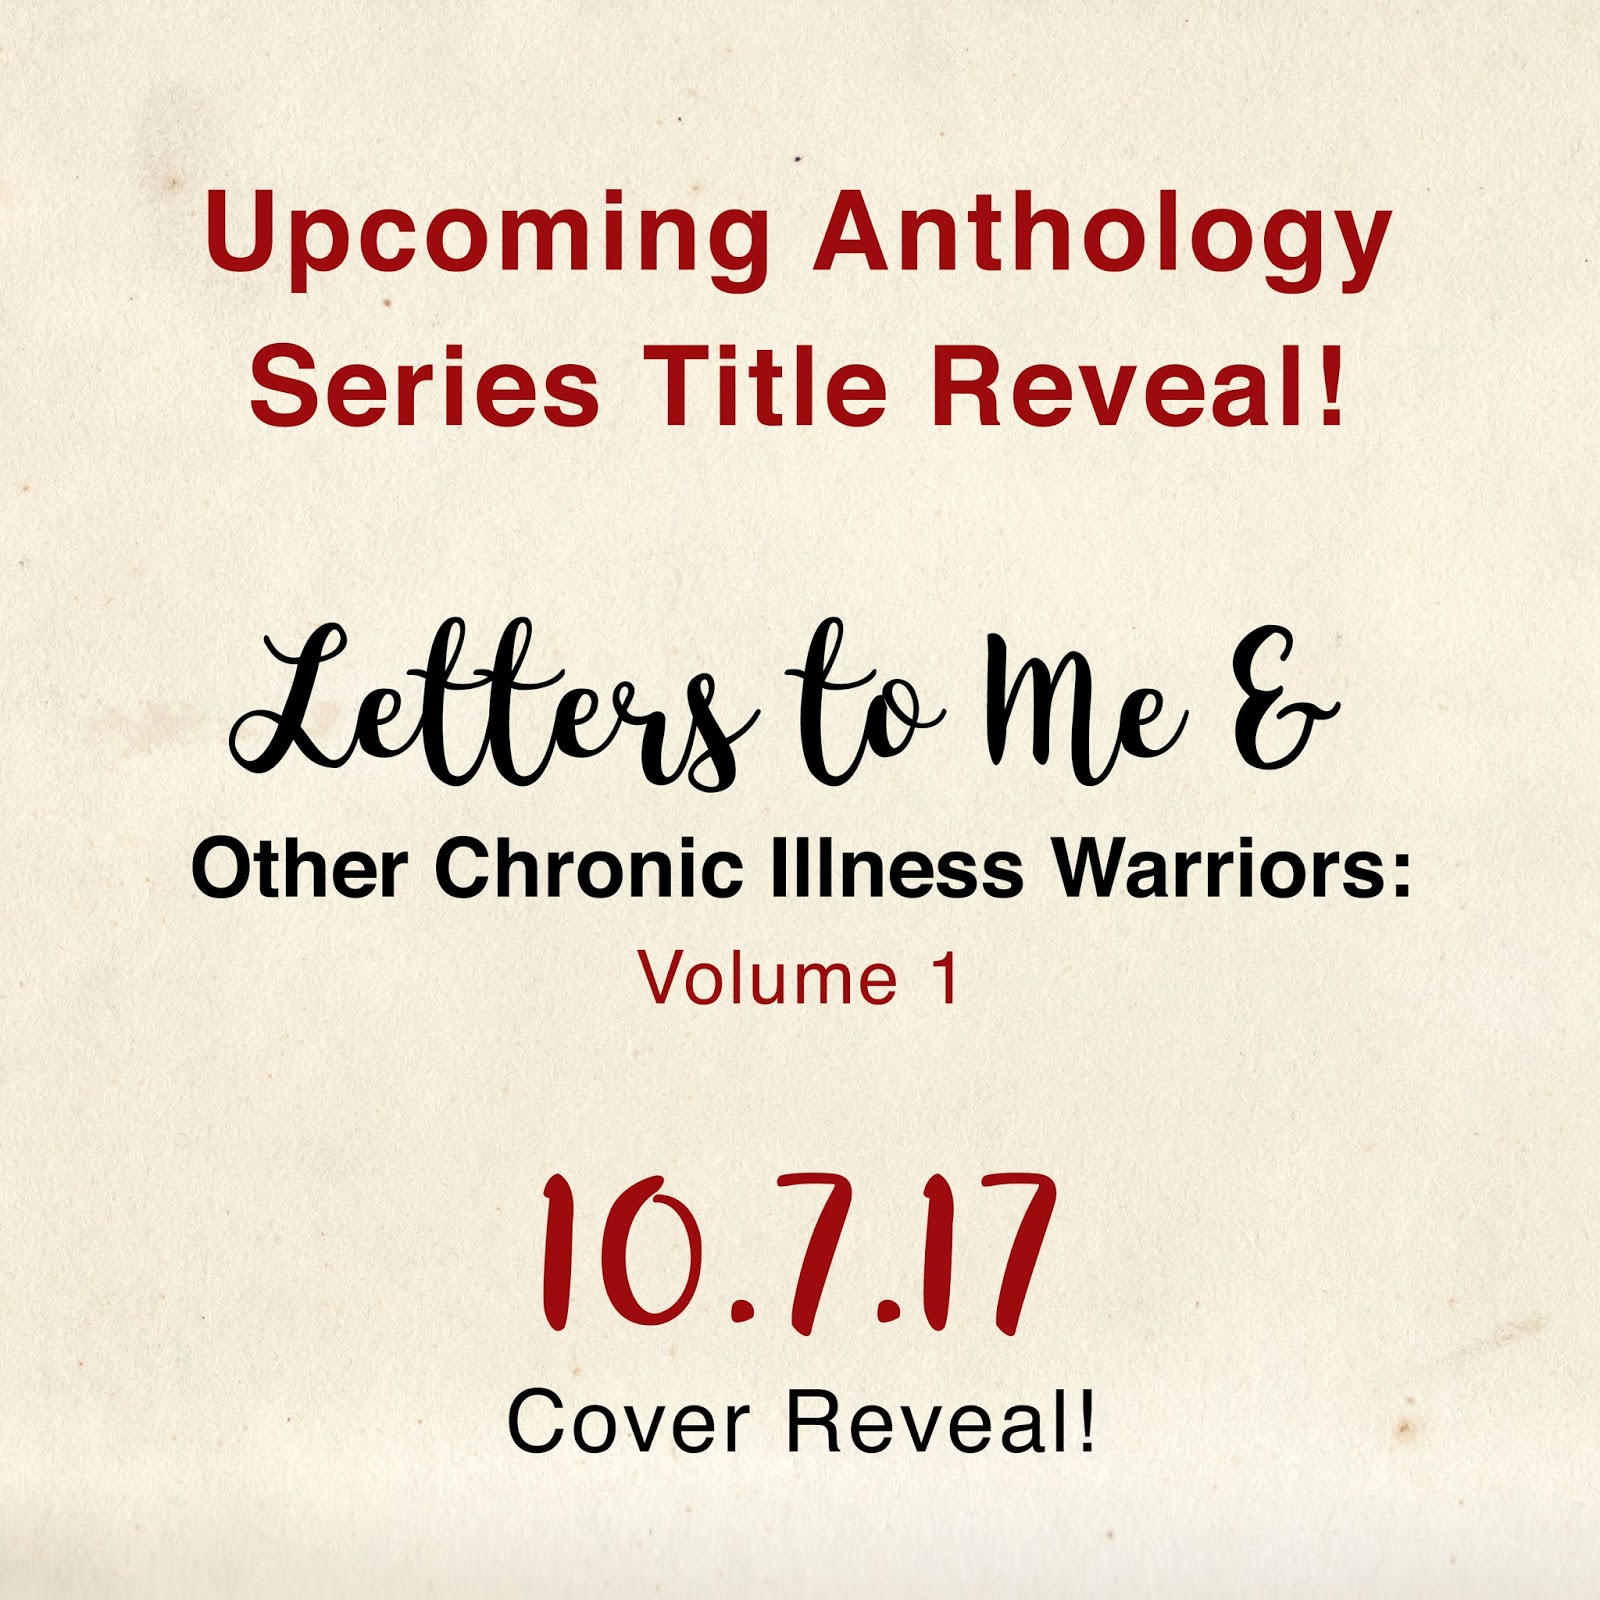 Letters to Me Title Reveal Art